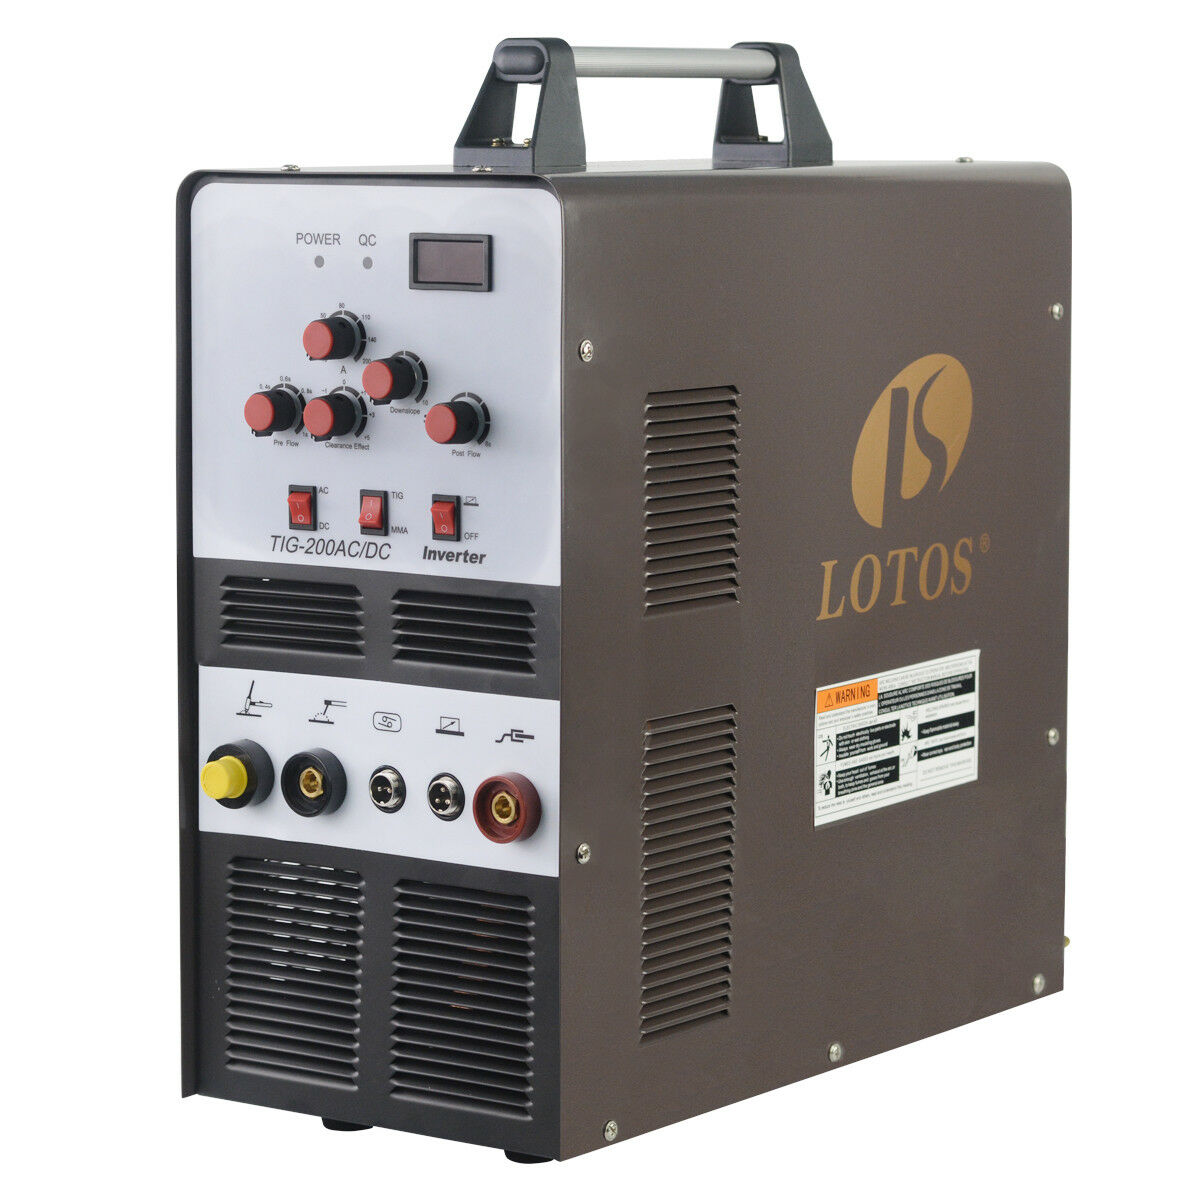 TIG/Stick Square Wave Inverter AC/DC Aluminum 200A Lotos TIG200 Welder Brand New. Buy it now for 559.00